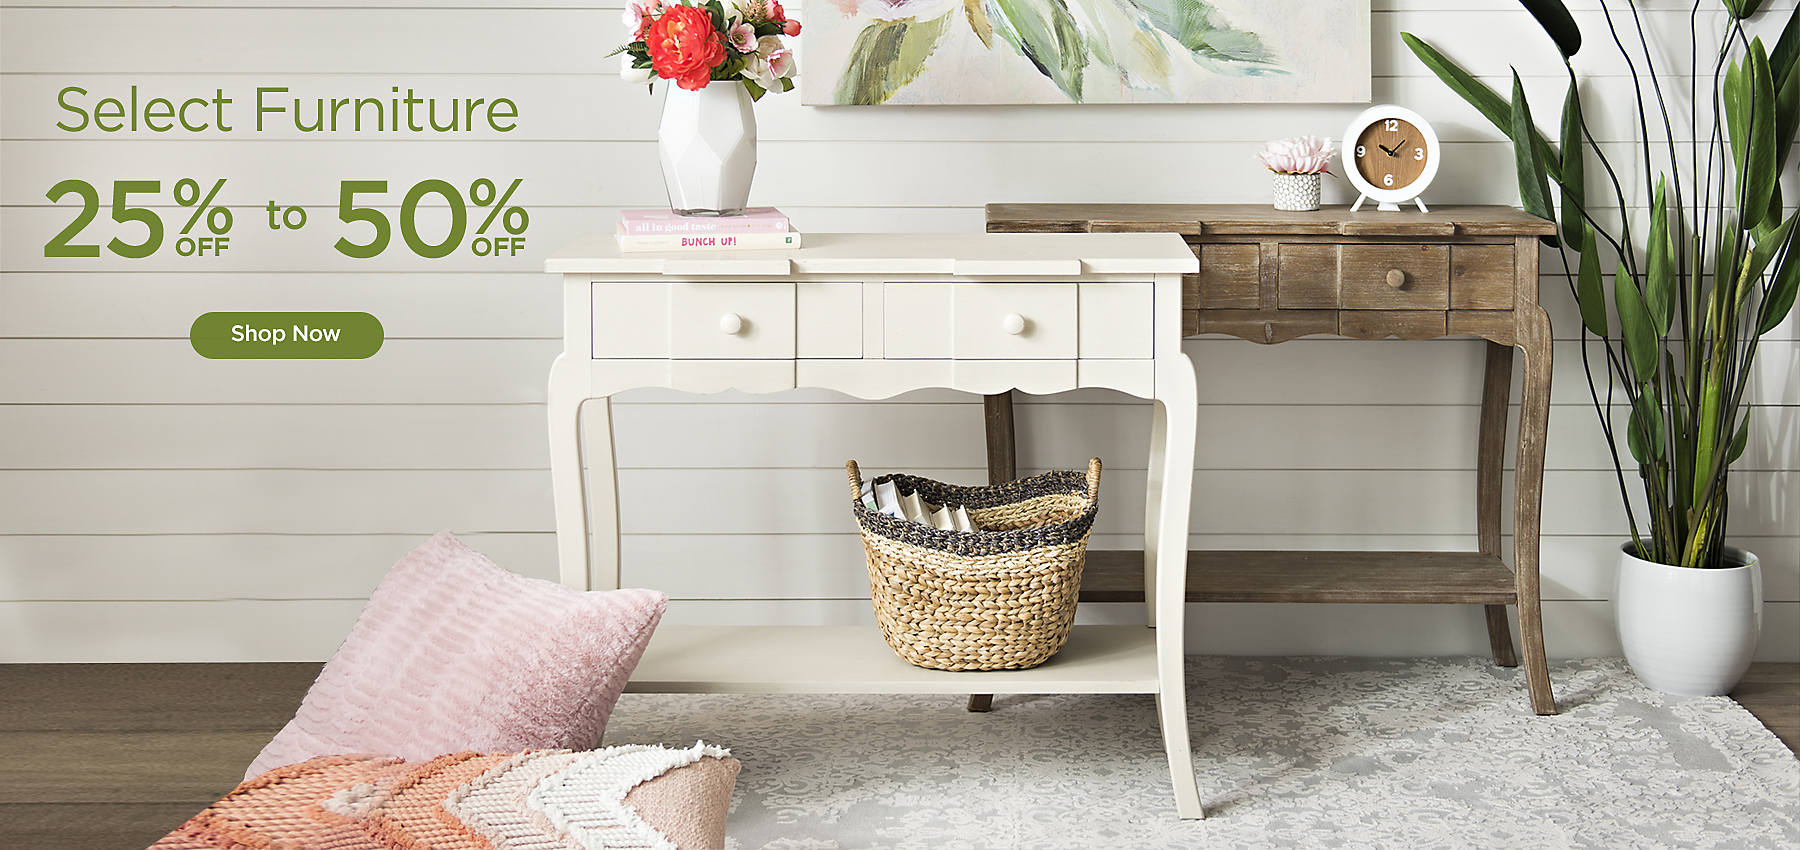 25 To 50 Off Select Furniture